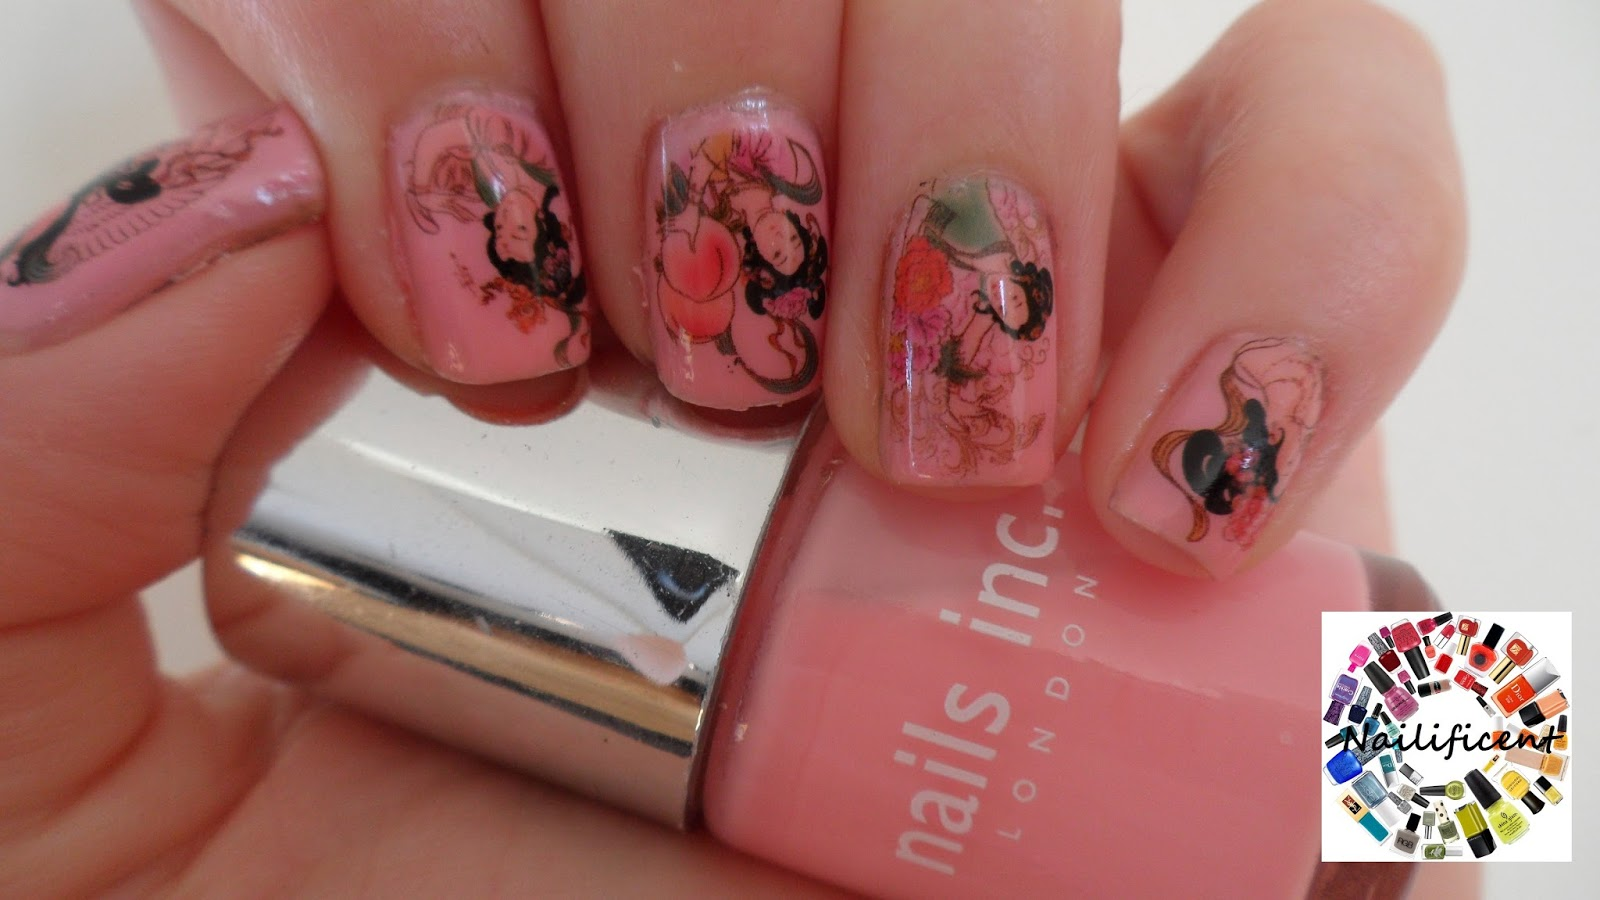 Nailificent: Geisha Girl Water Decal Nail Art